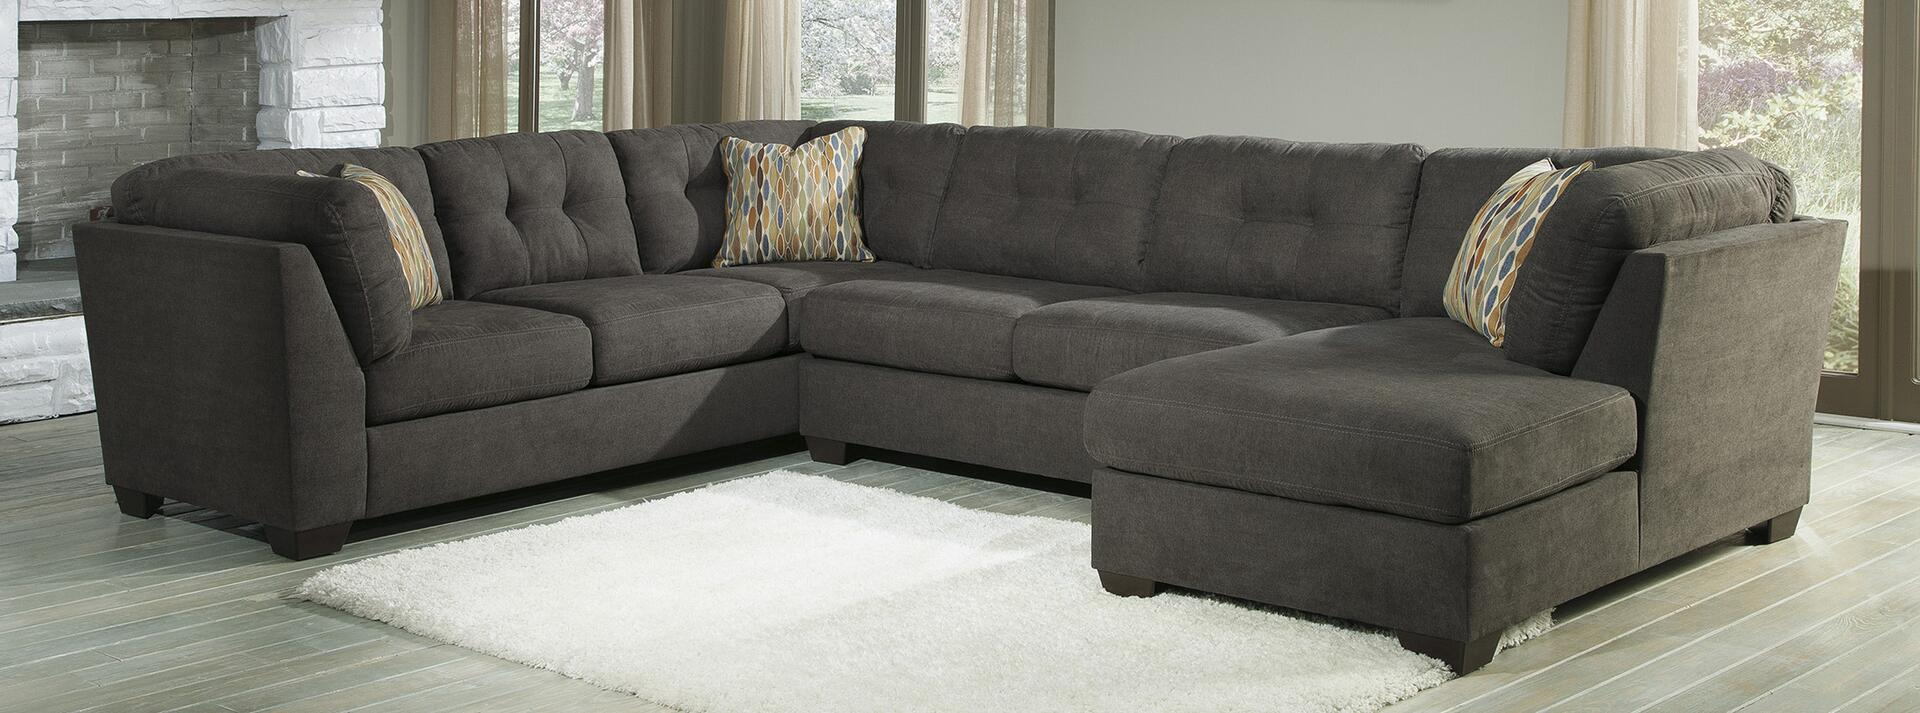 Benchcraft furniture berkline sofa recliner benchcraft for Berkline sectional sofa with chaise